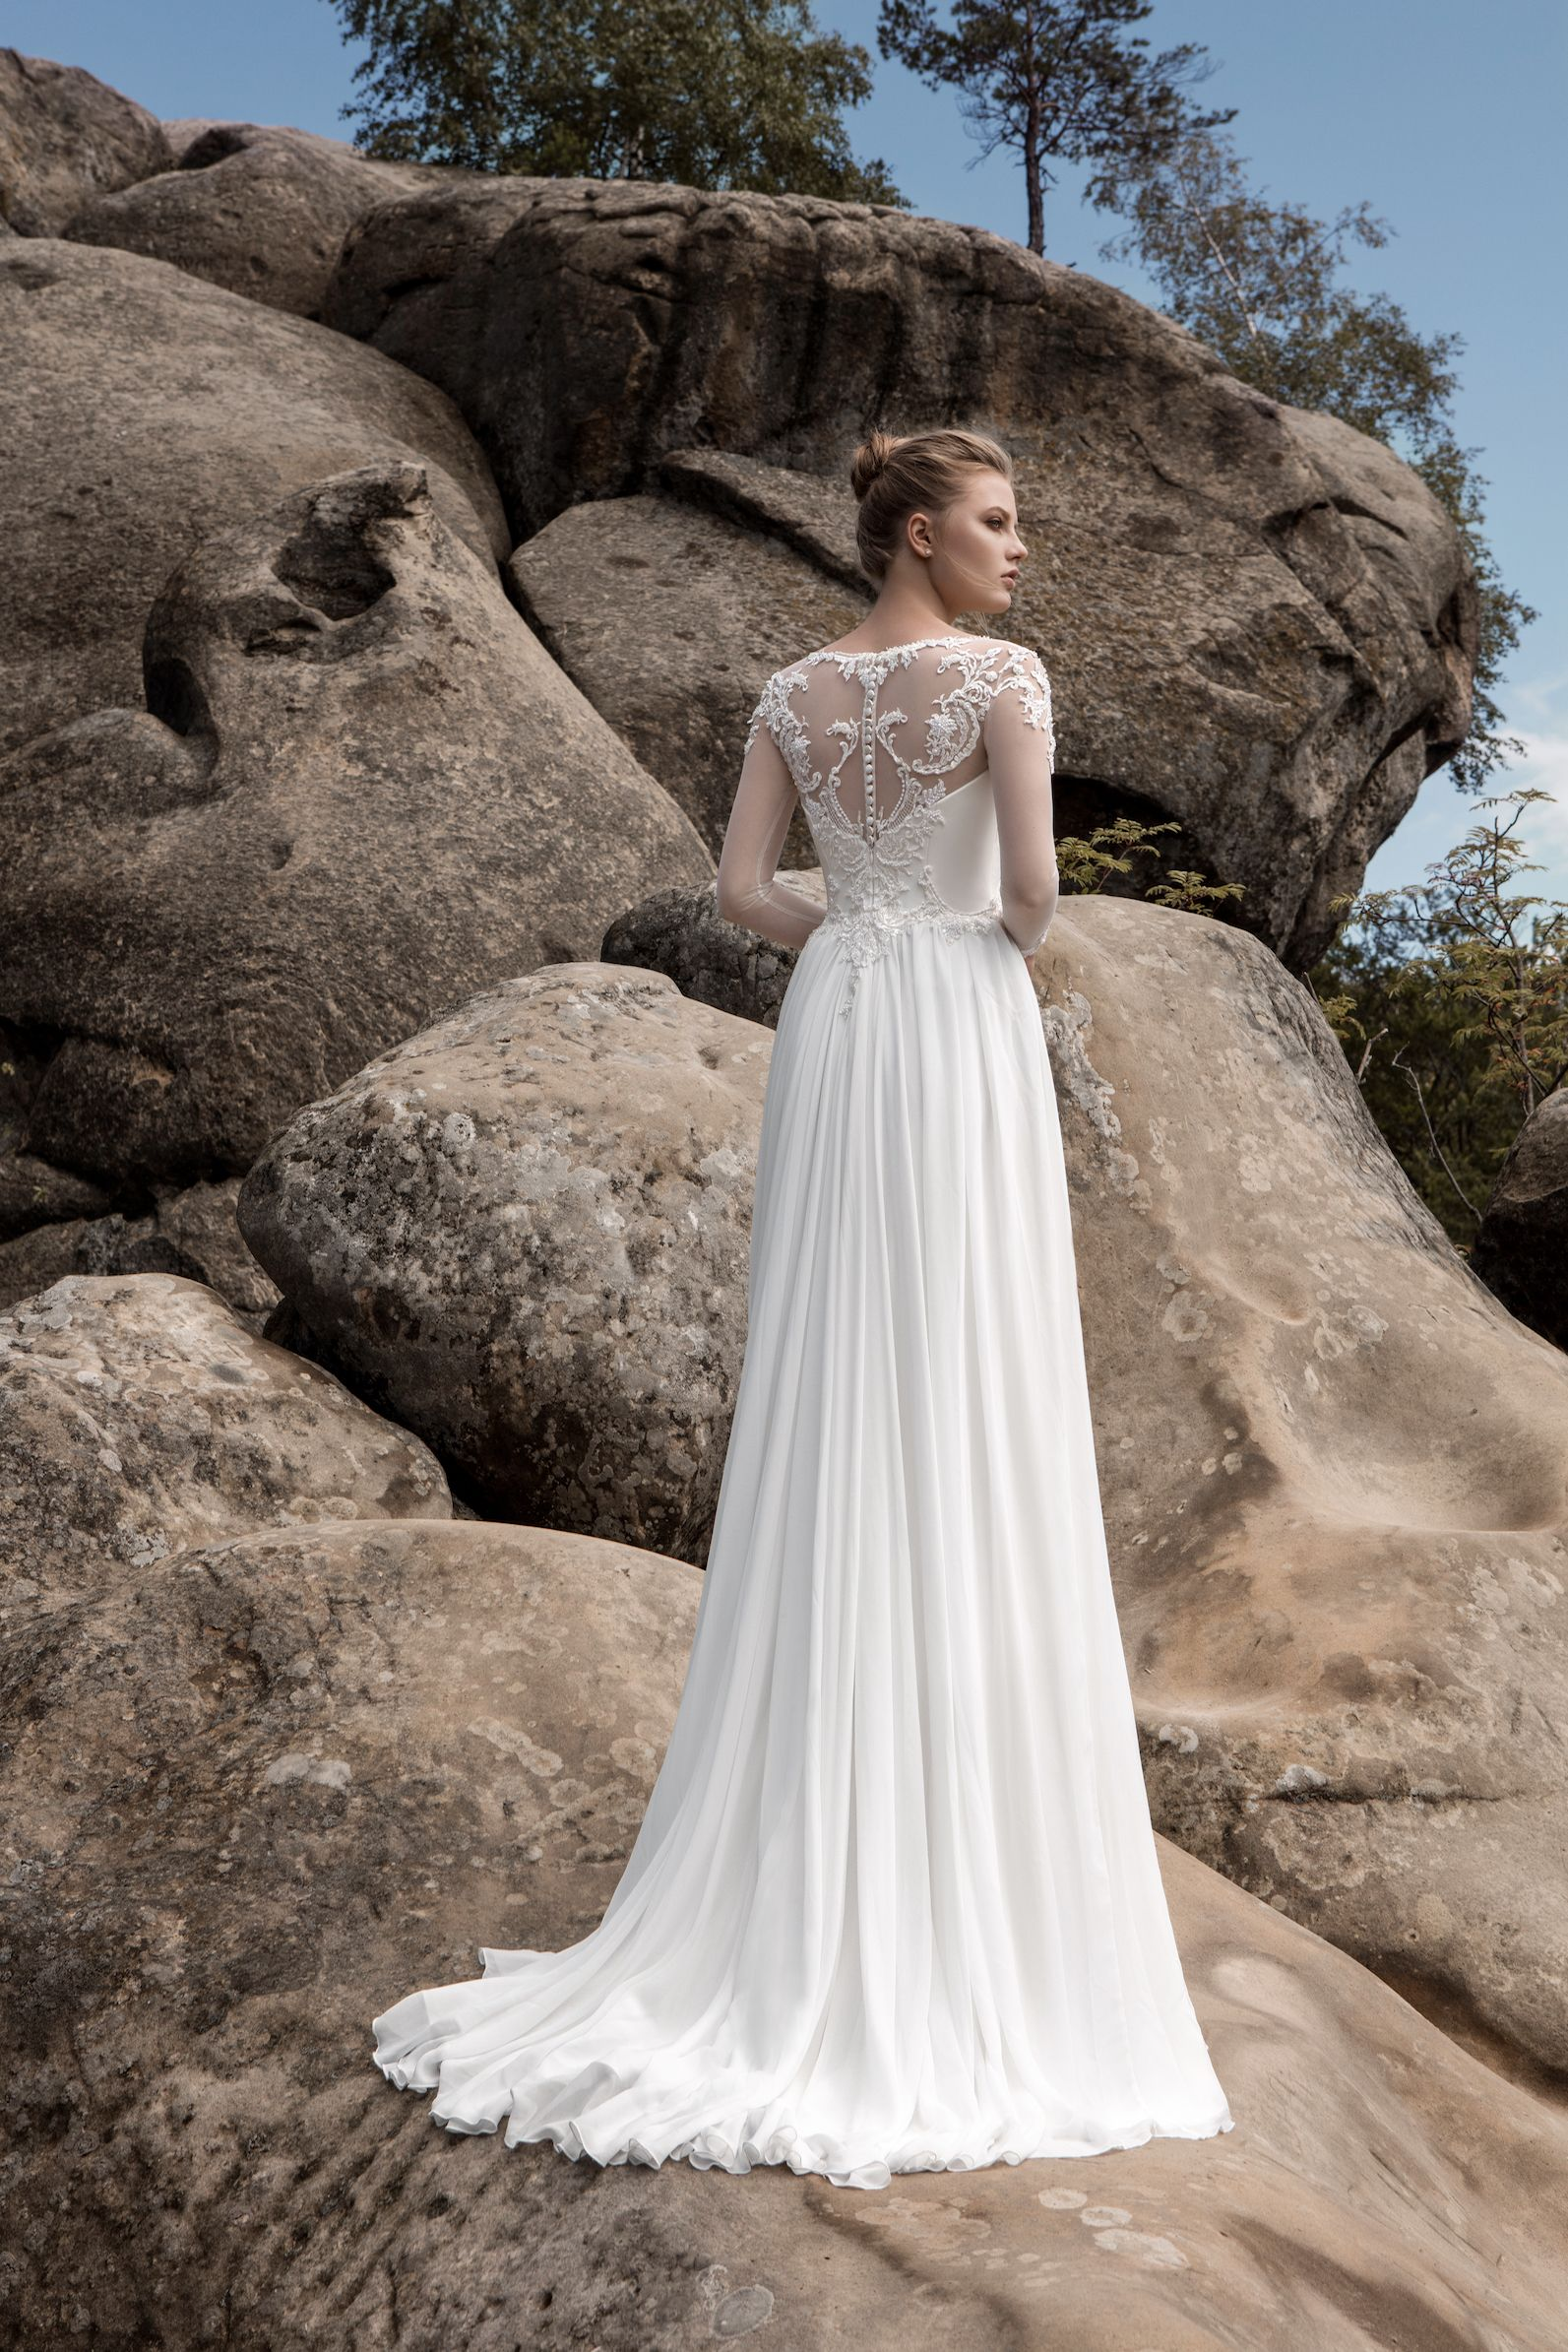 Pin by kathy claus on weddings pinterest wedding dress and weddings